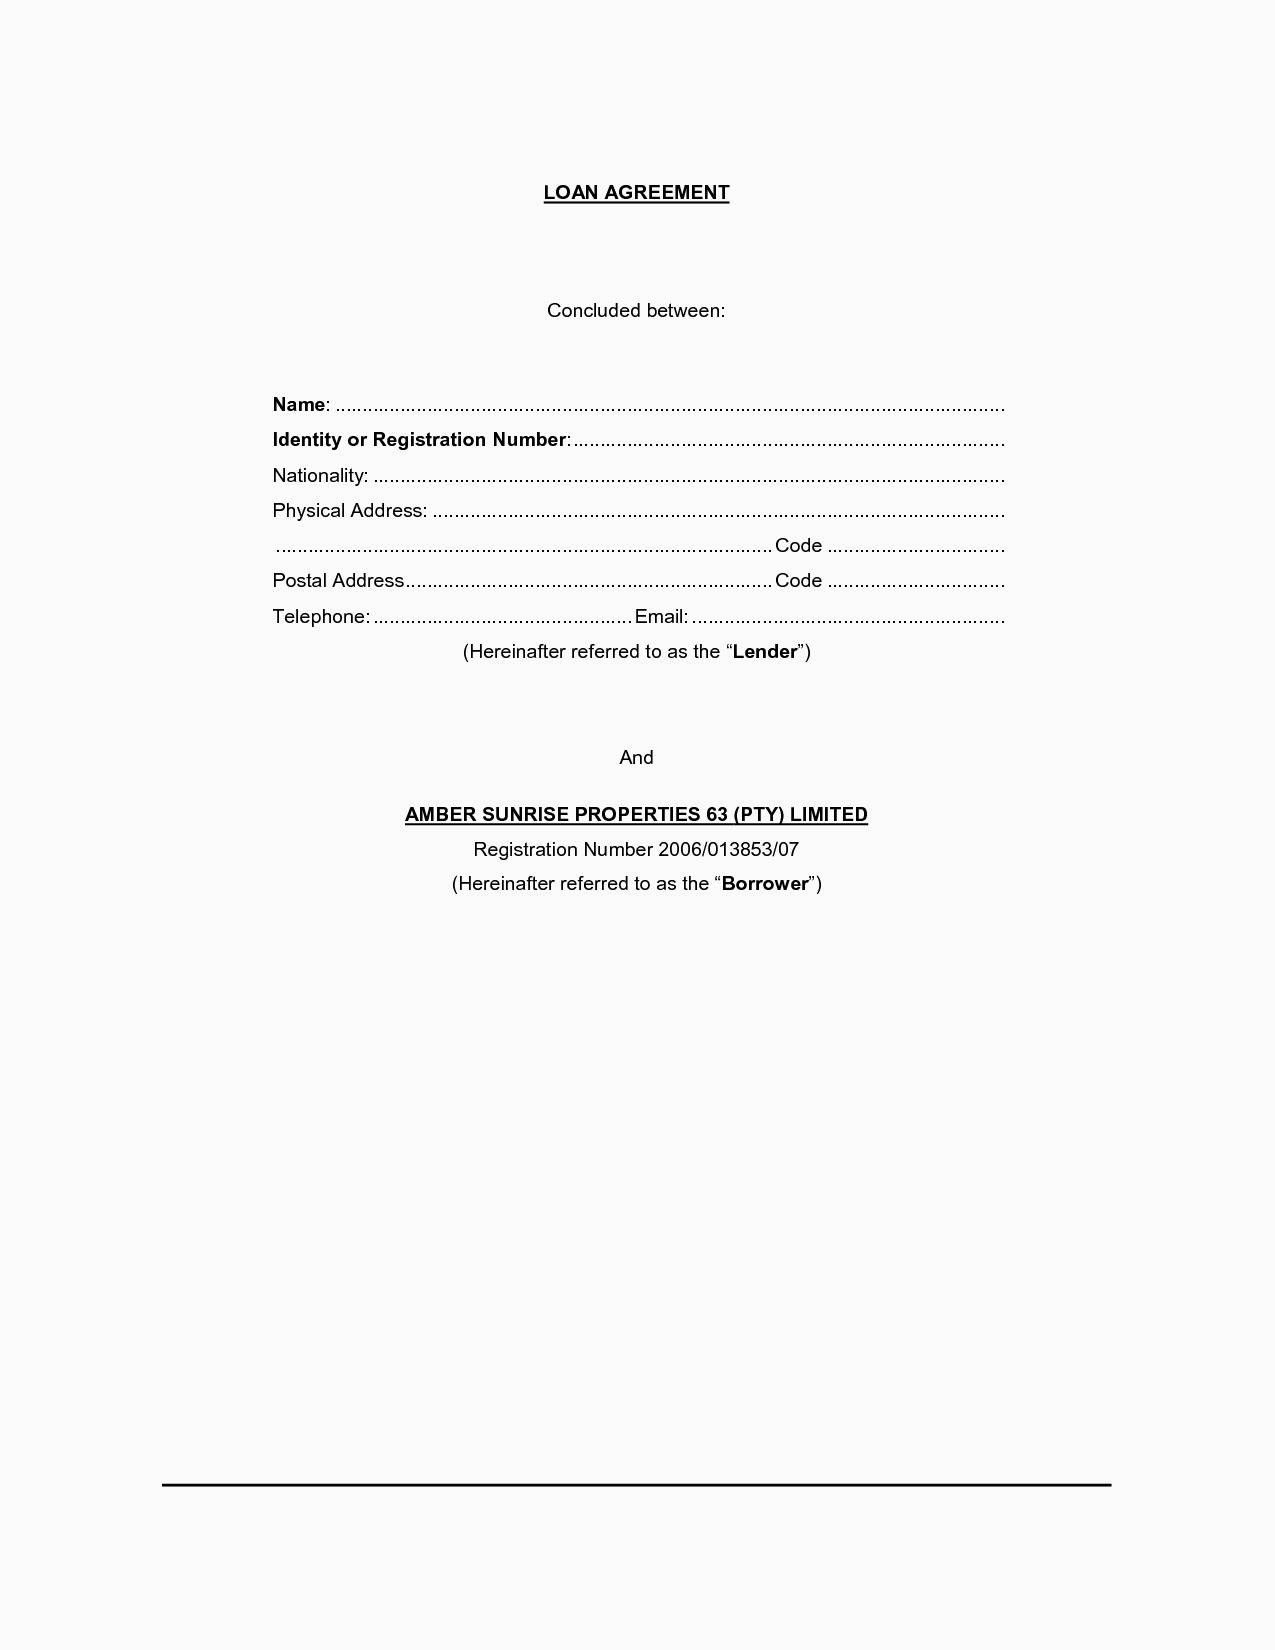 Legally Binding Loan Agreement Template